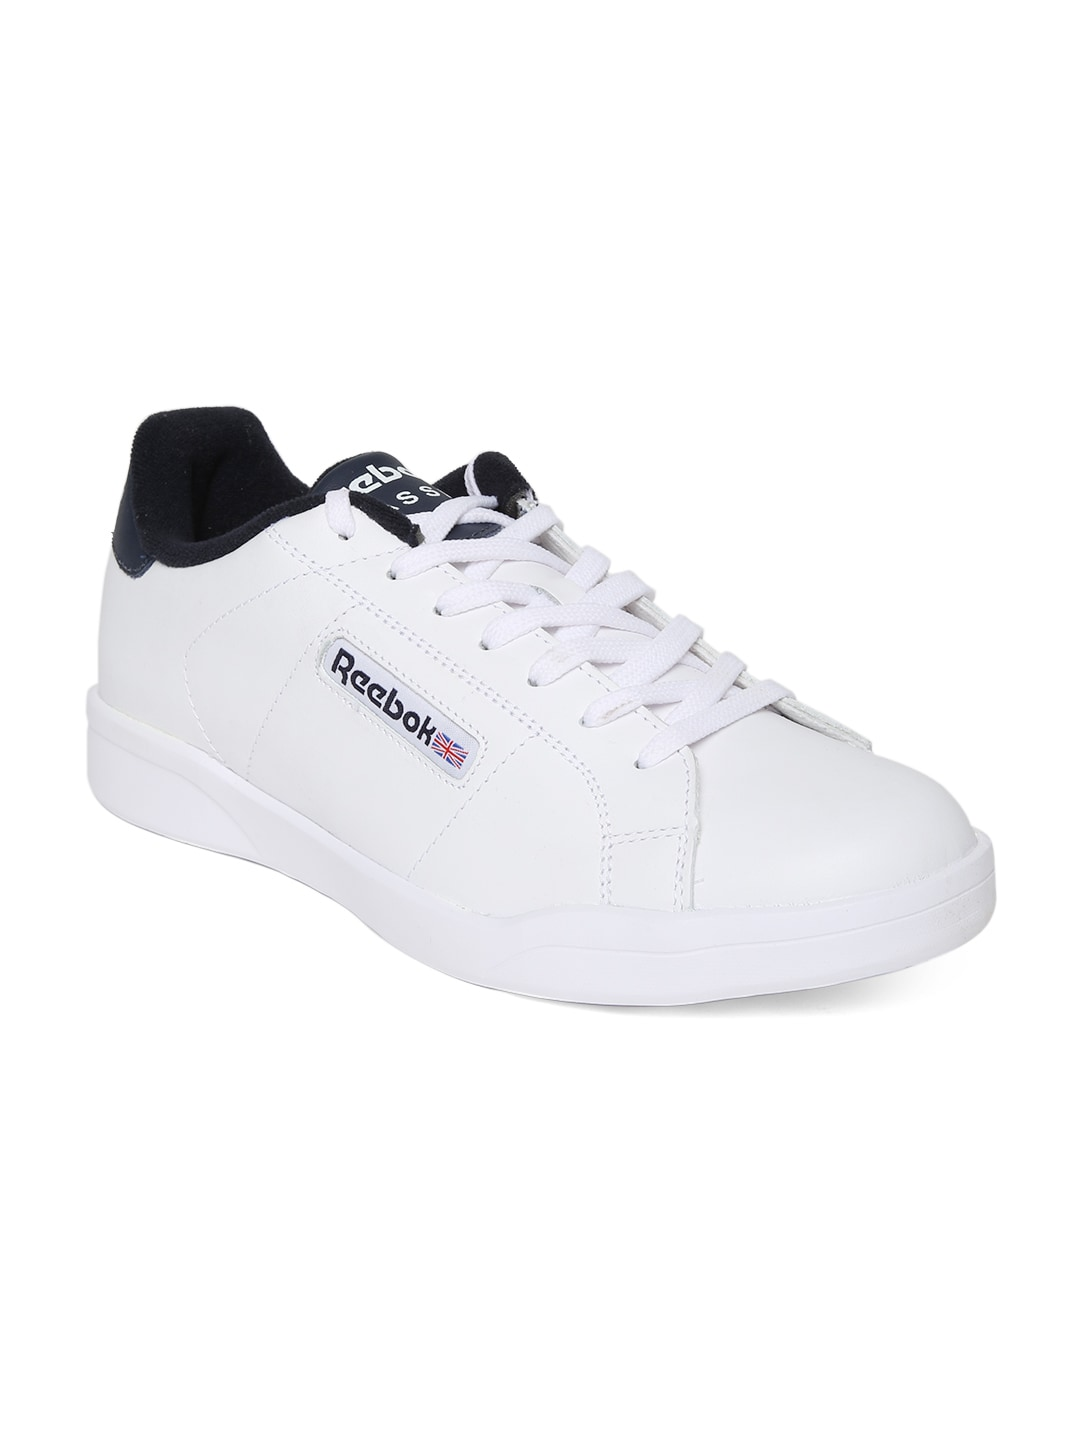 6daaf3959 Reebok m46129 Classic Men White Leather Casual Shoes- Price in India